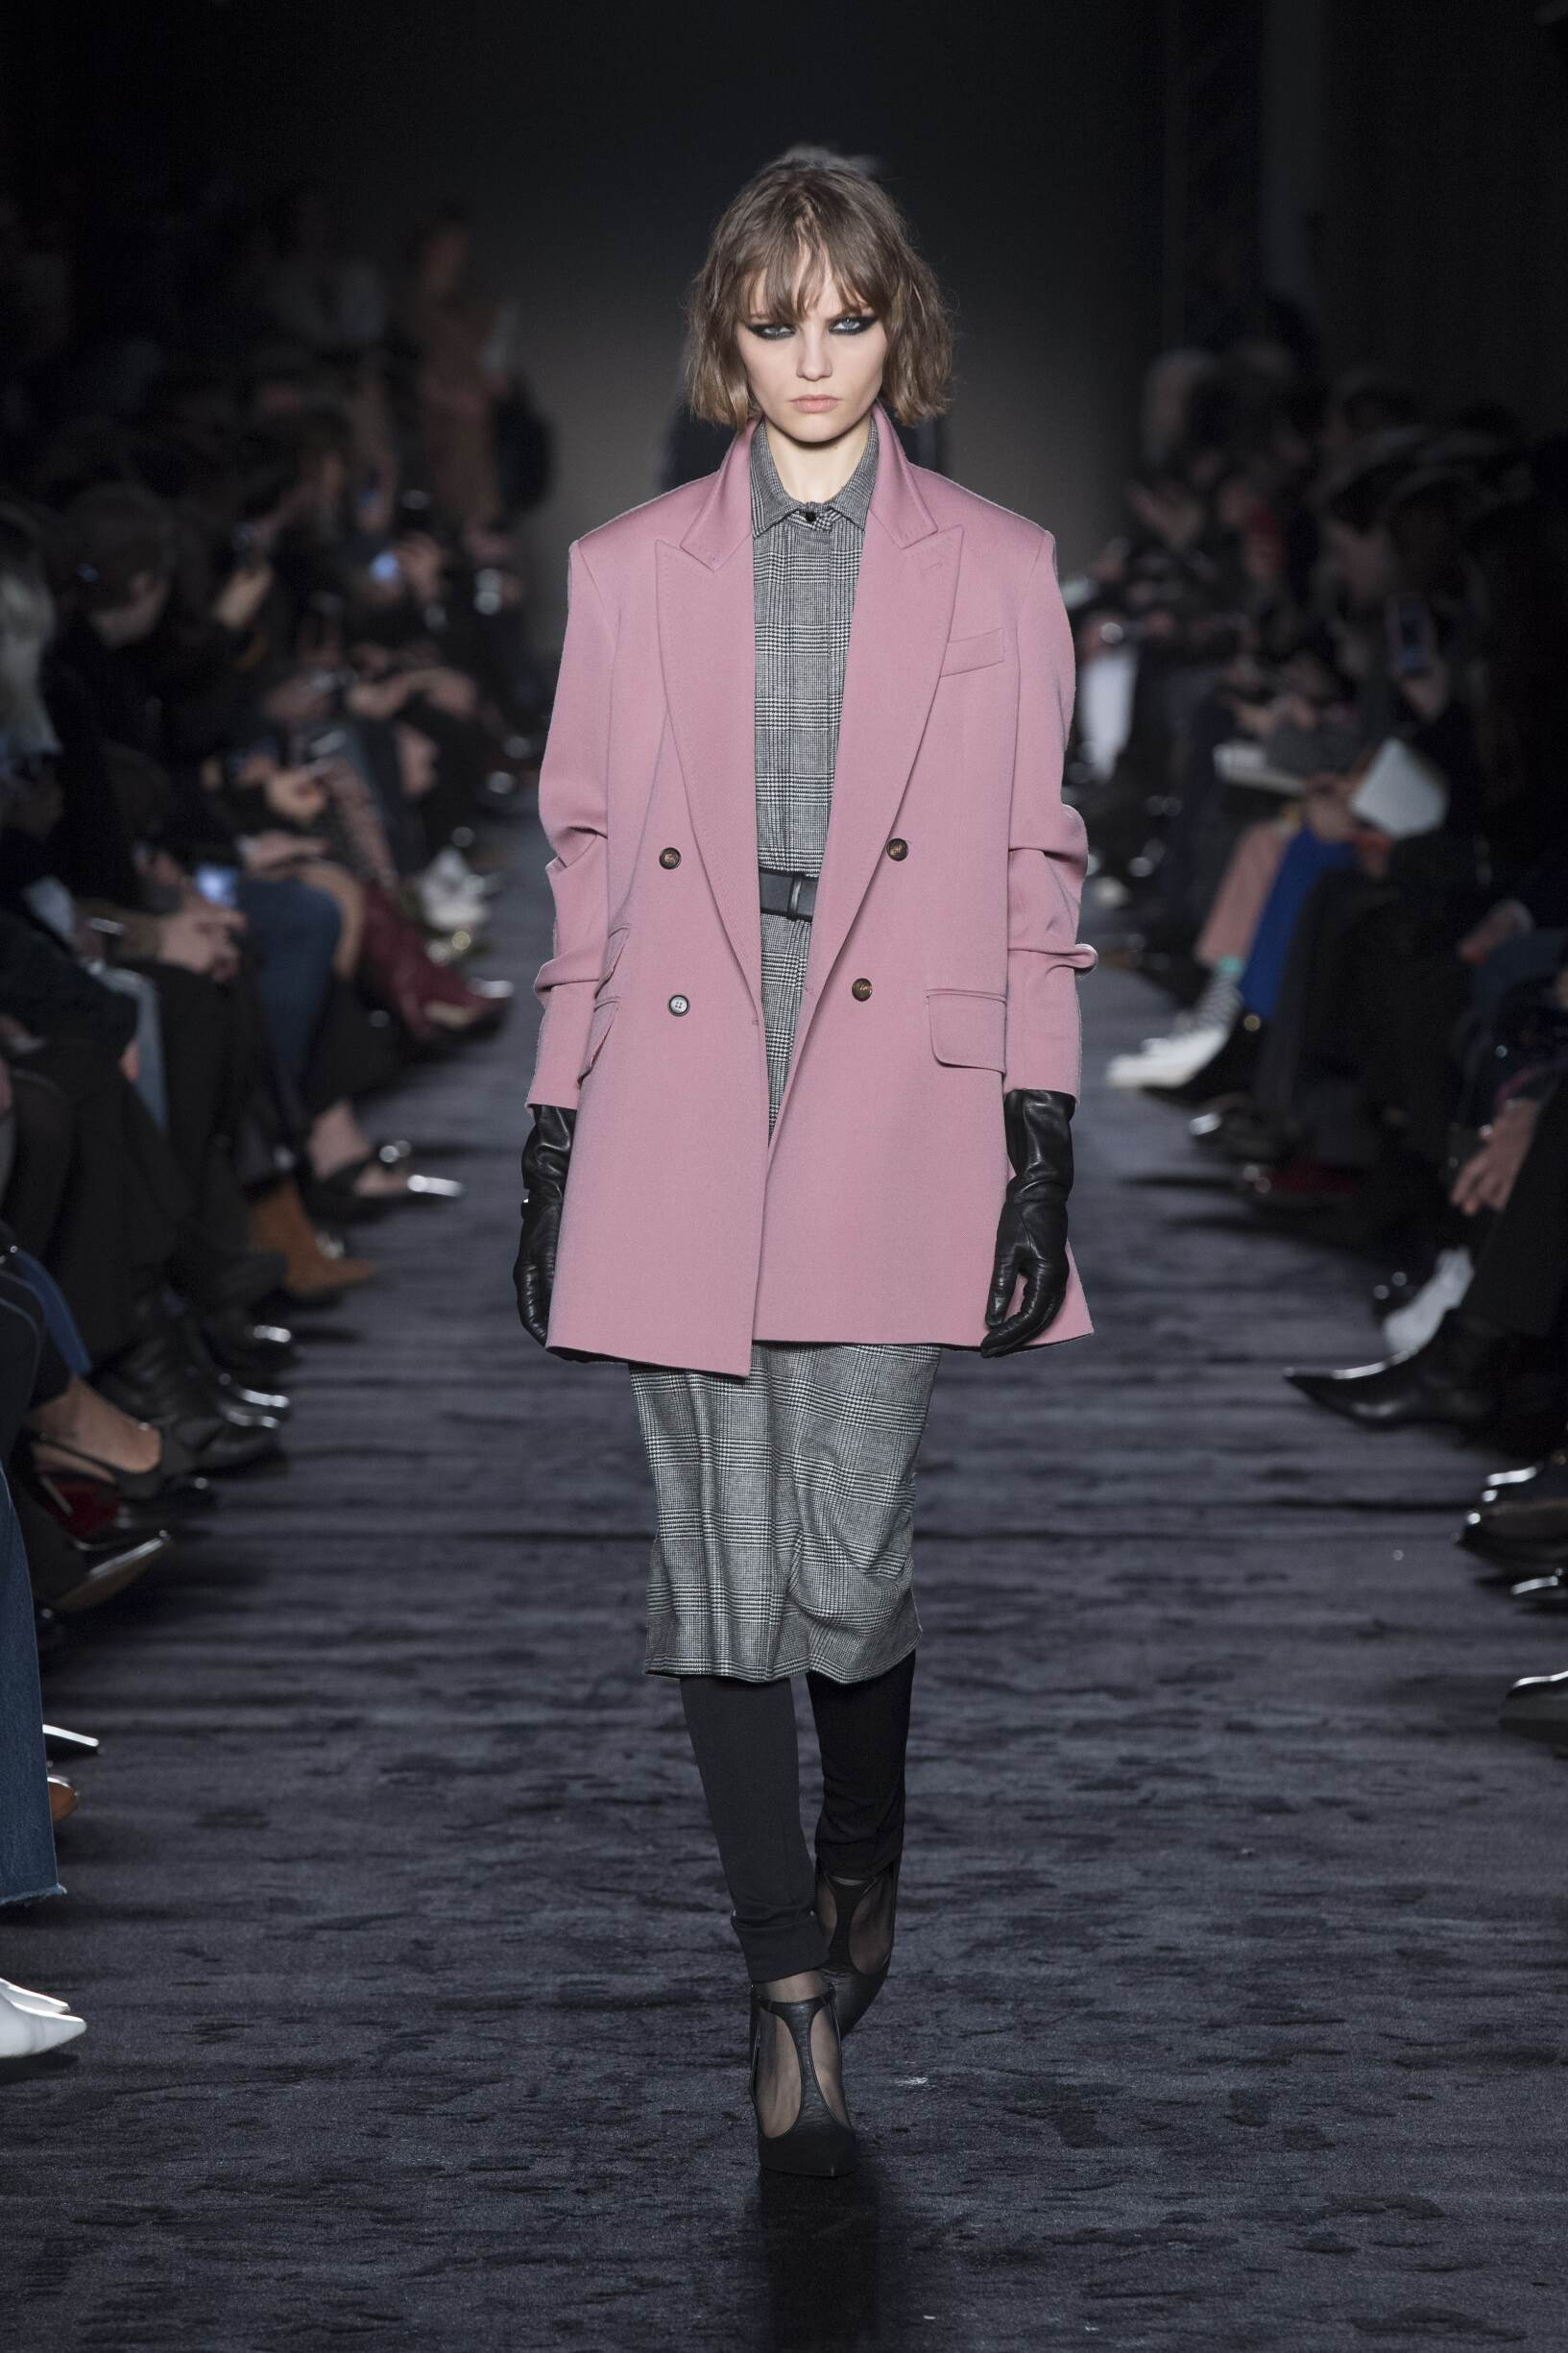 Fall Fashion Woman Trends 2018 Max Mara